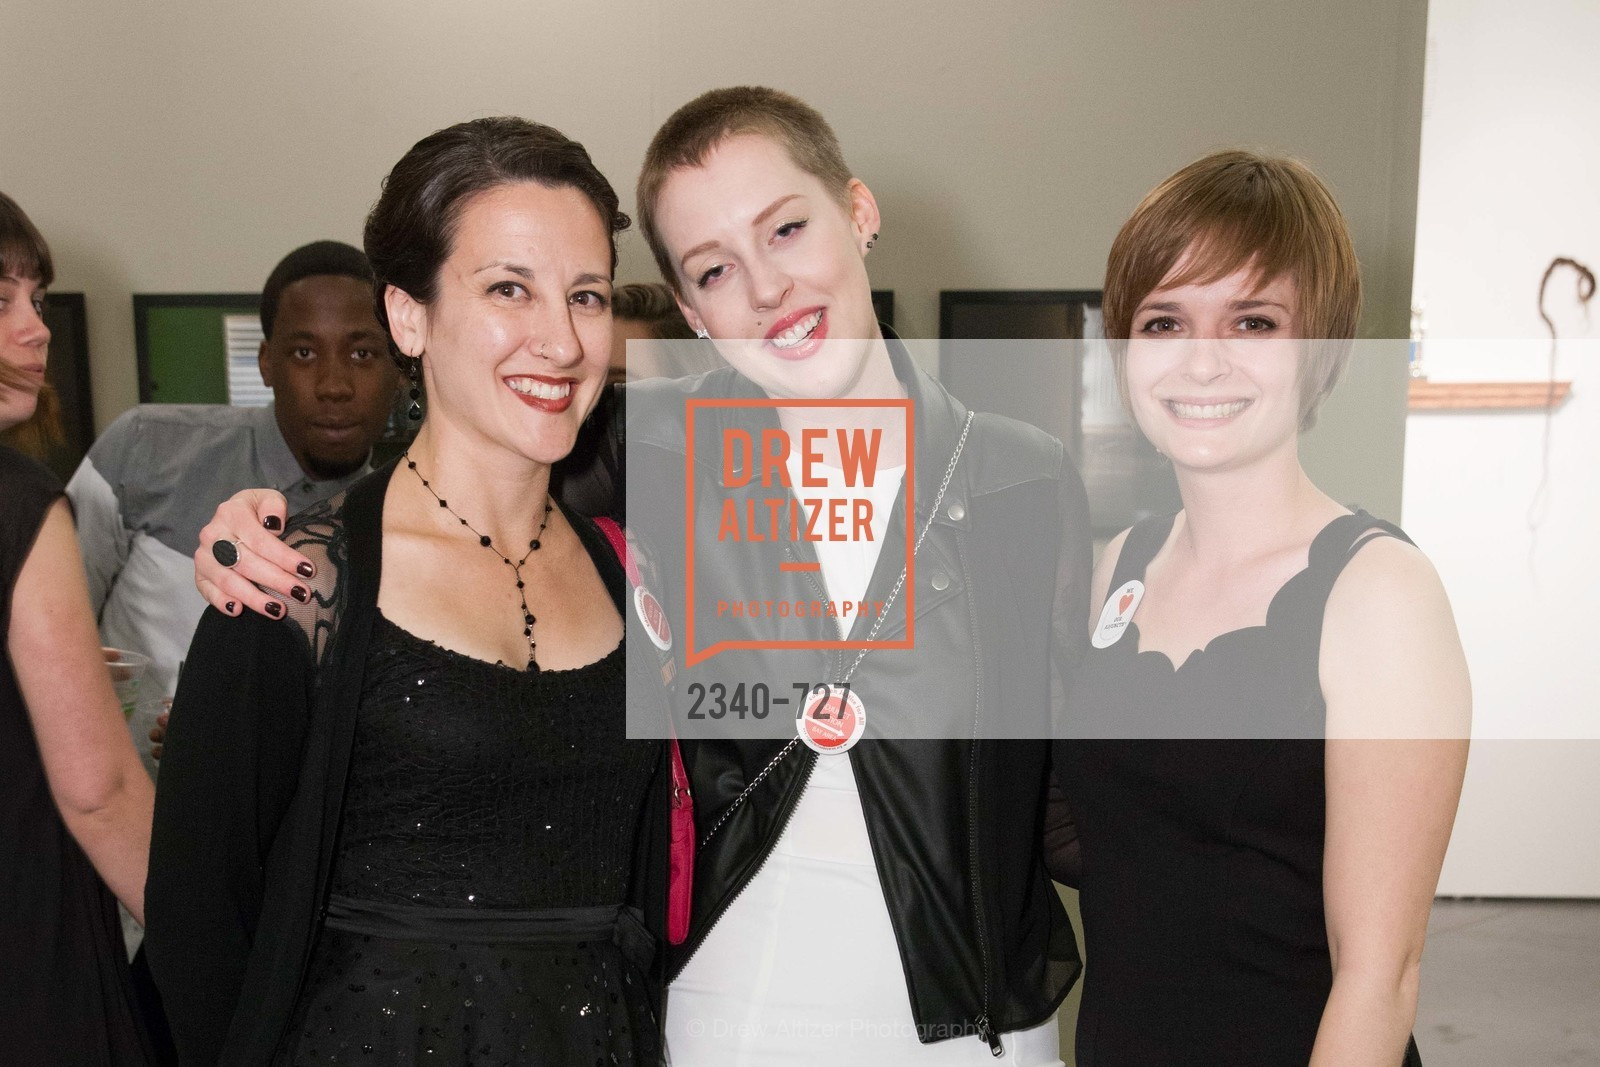 Shannon Russell, Anna Garsky, Katherine Vetney, SAN FRANCISCO ART INSTITUTE Gala Honoring Art Visionary and Advocate ROSELYNE CHROMAN SWIG, US, May 13th, 2015,Drew Altizer, Drew Altizer Photography, full-service agency, private events, San Francisco photographer, photographer california